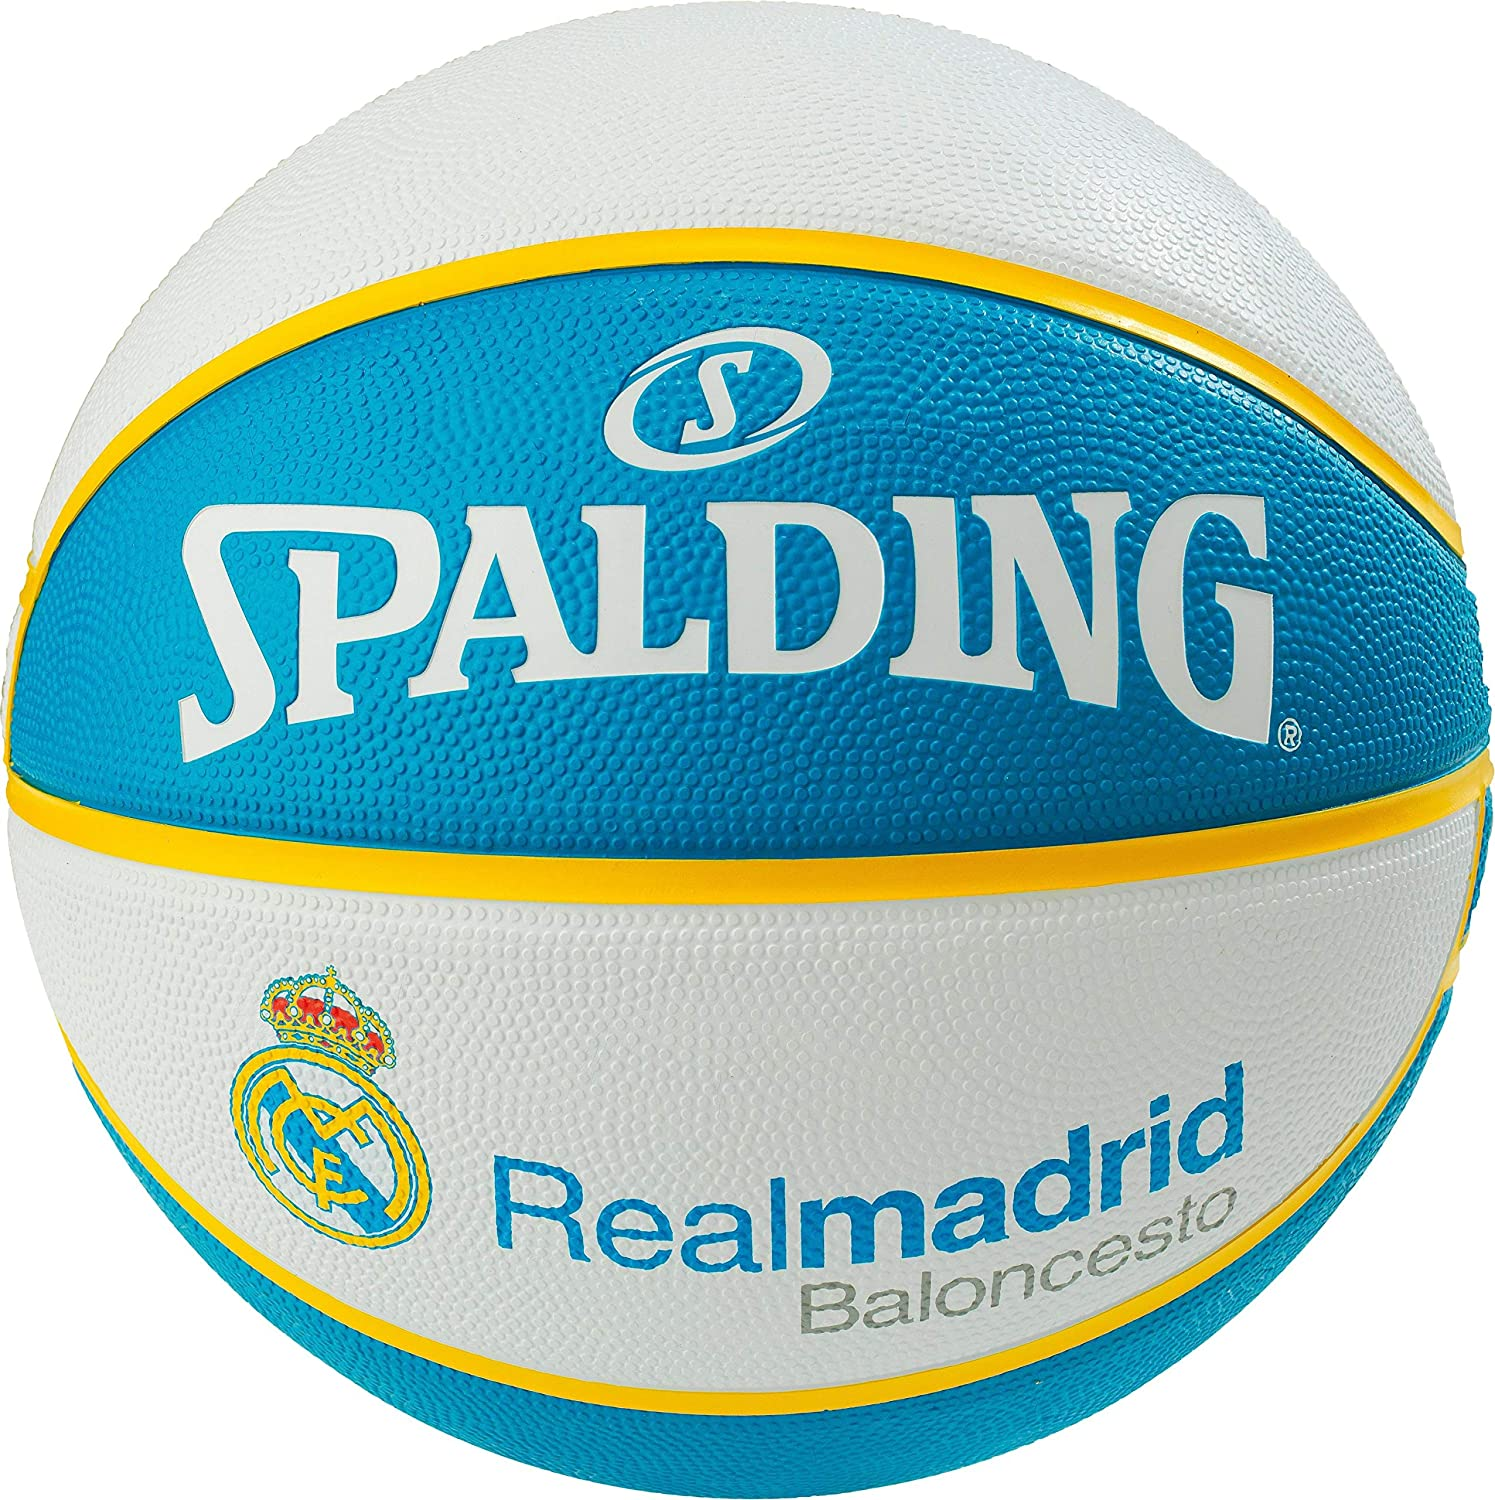 Spalding EL Team Real Madrid SZ.7 (83-787Z) Basketballs, Juventud ...